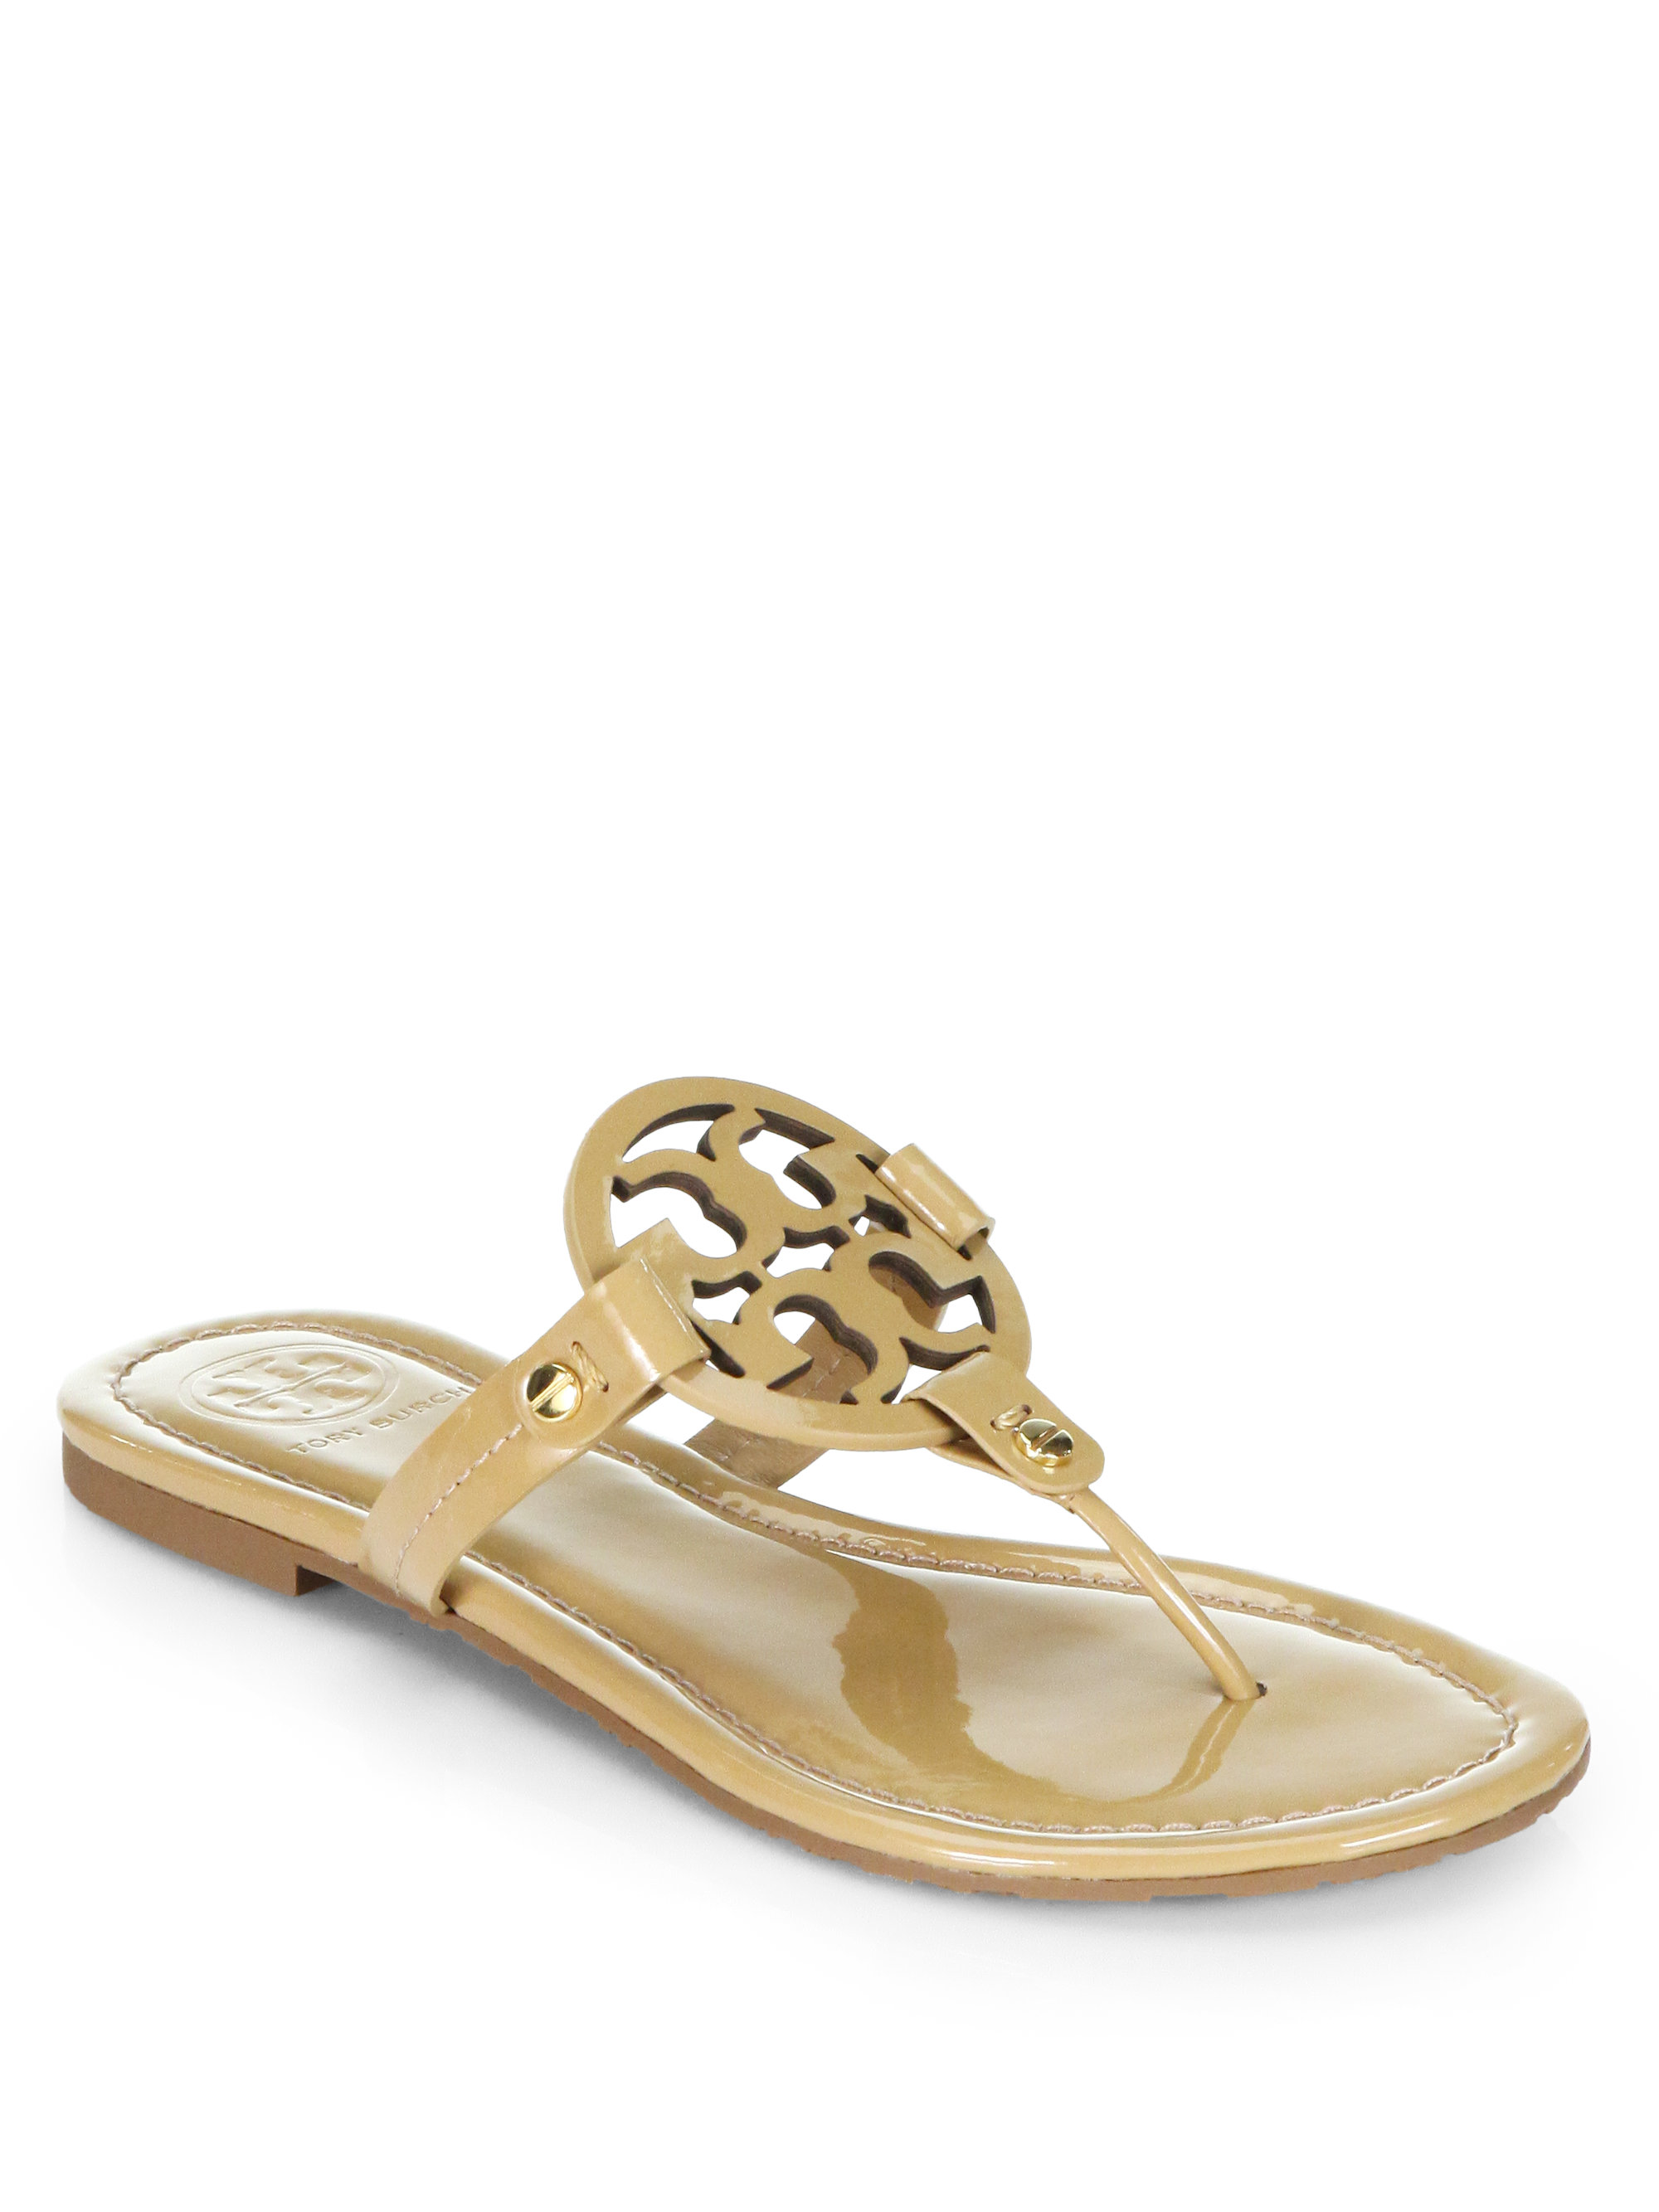 Tory Burch Miller Patent Leather Thong Sandals In Khaki